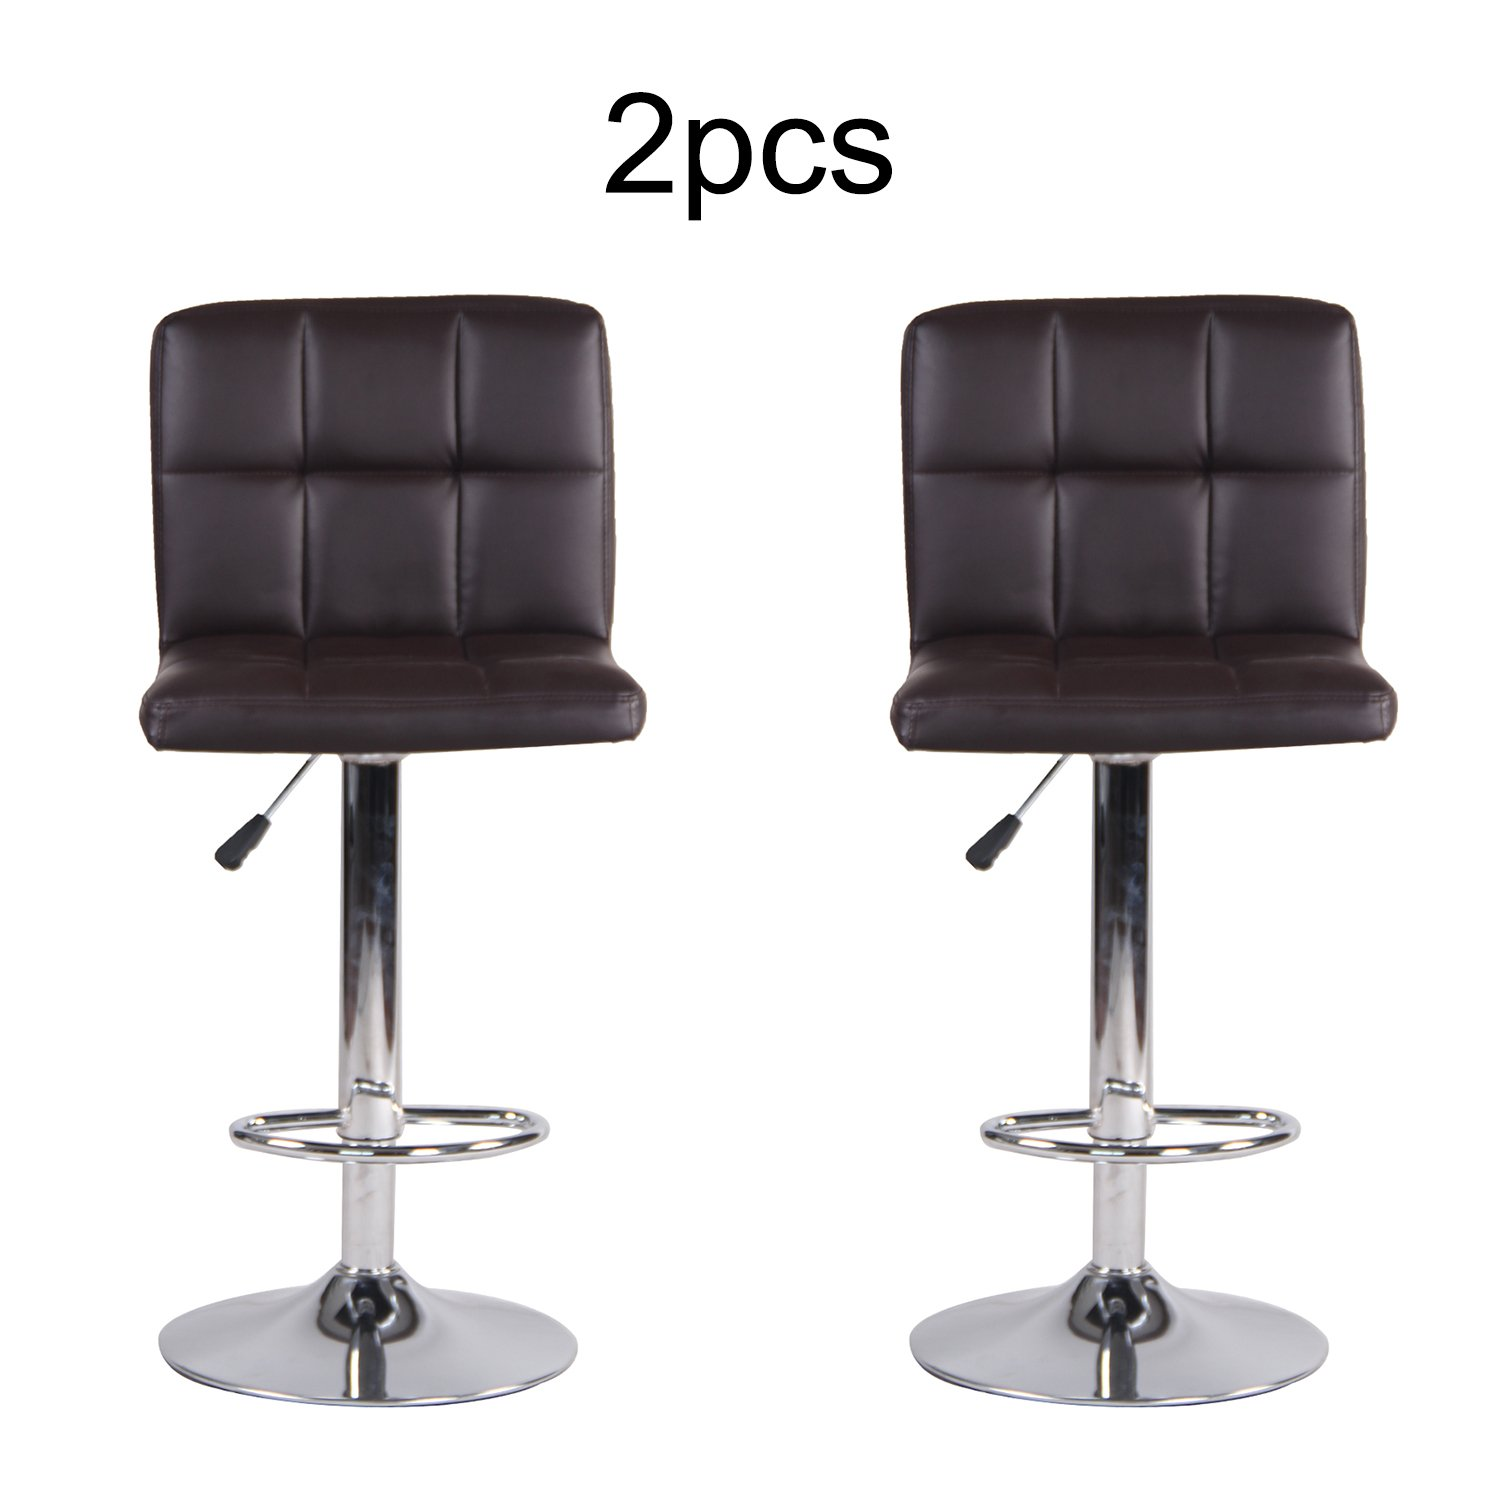 2 PCS Bar Stools Set with Backrest, Leatherette Exterior, Adjustable Swivel Gas Lift, Chrome Footrest and Base for Breakfast Bar, Counter, Kitchen and Home (Brown)